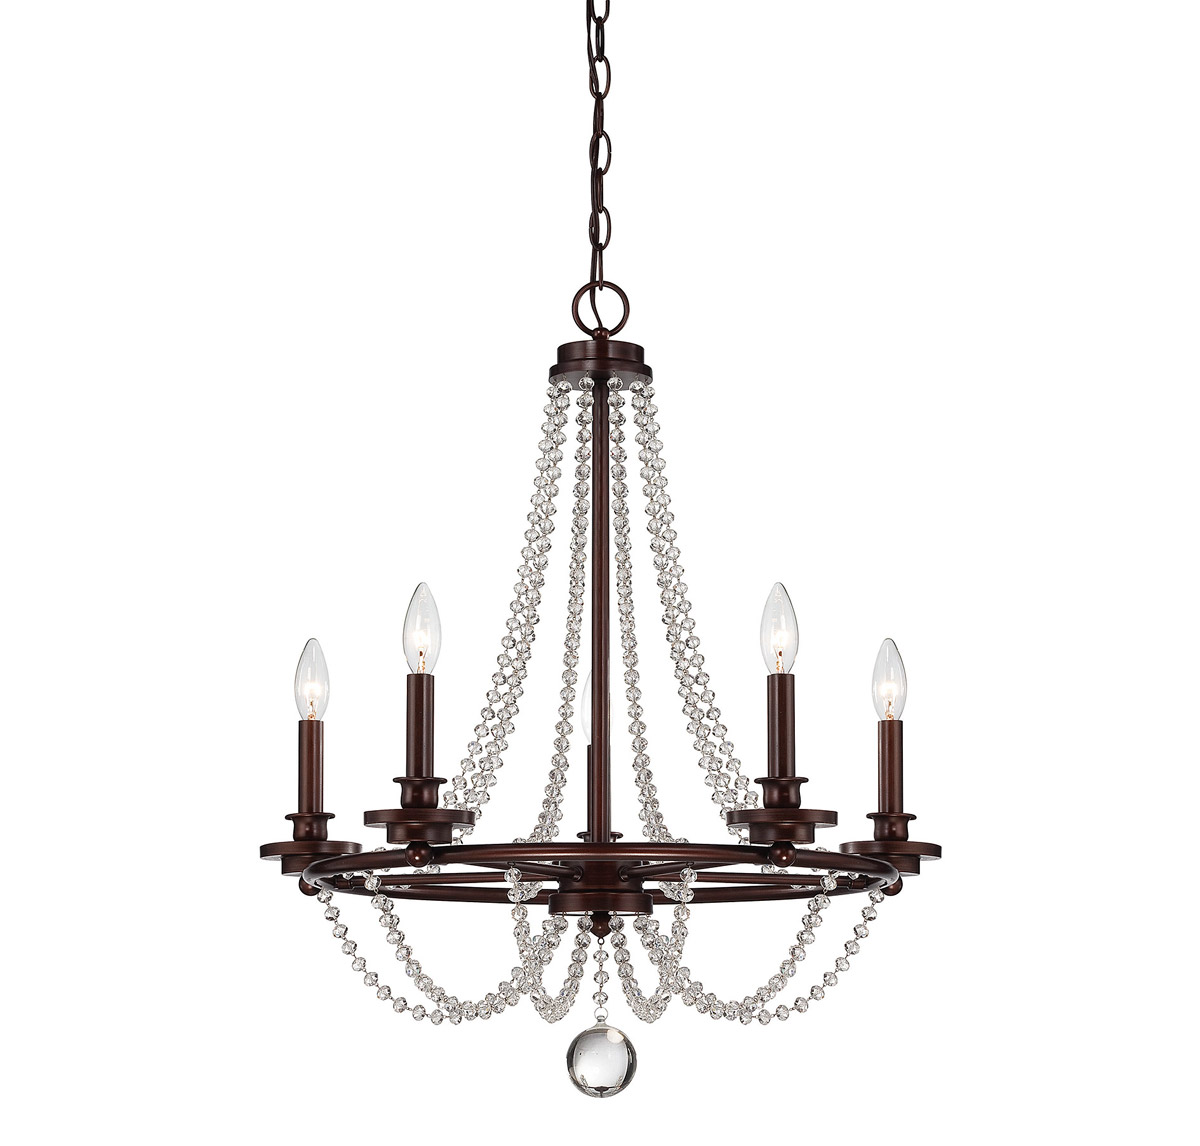 Chandeliers 5 Light With Mohican Bronze Finish Candelabra